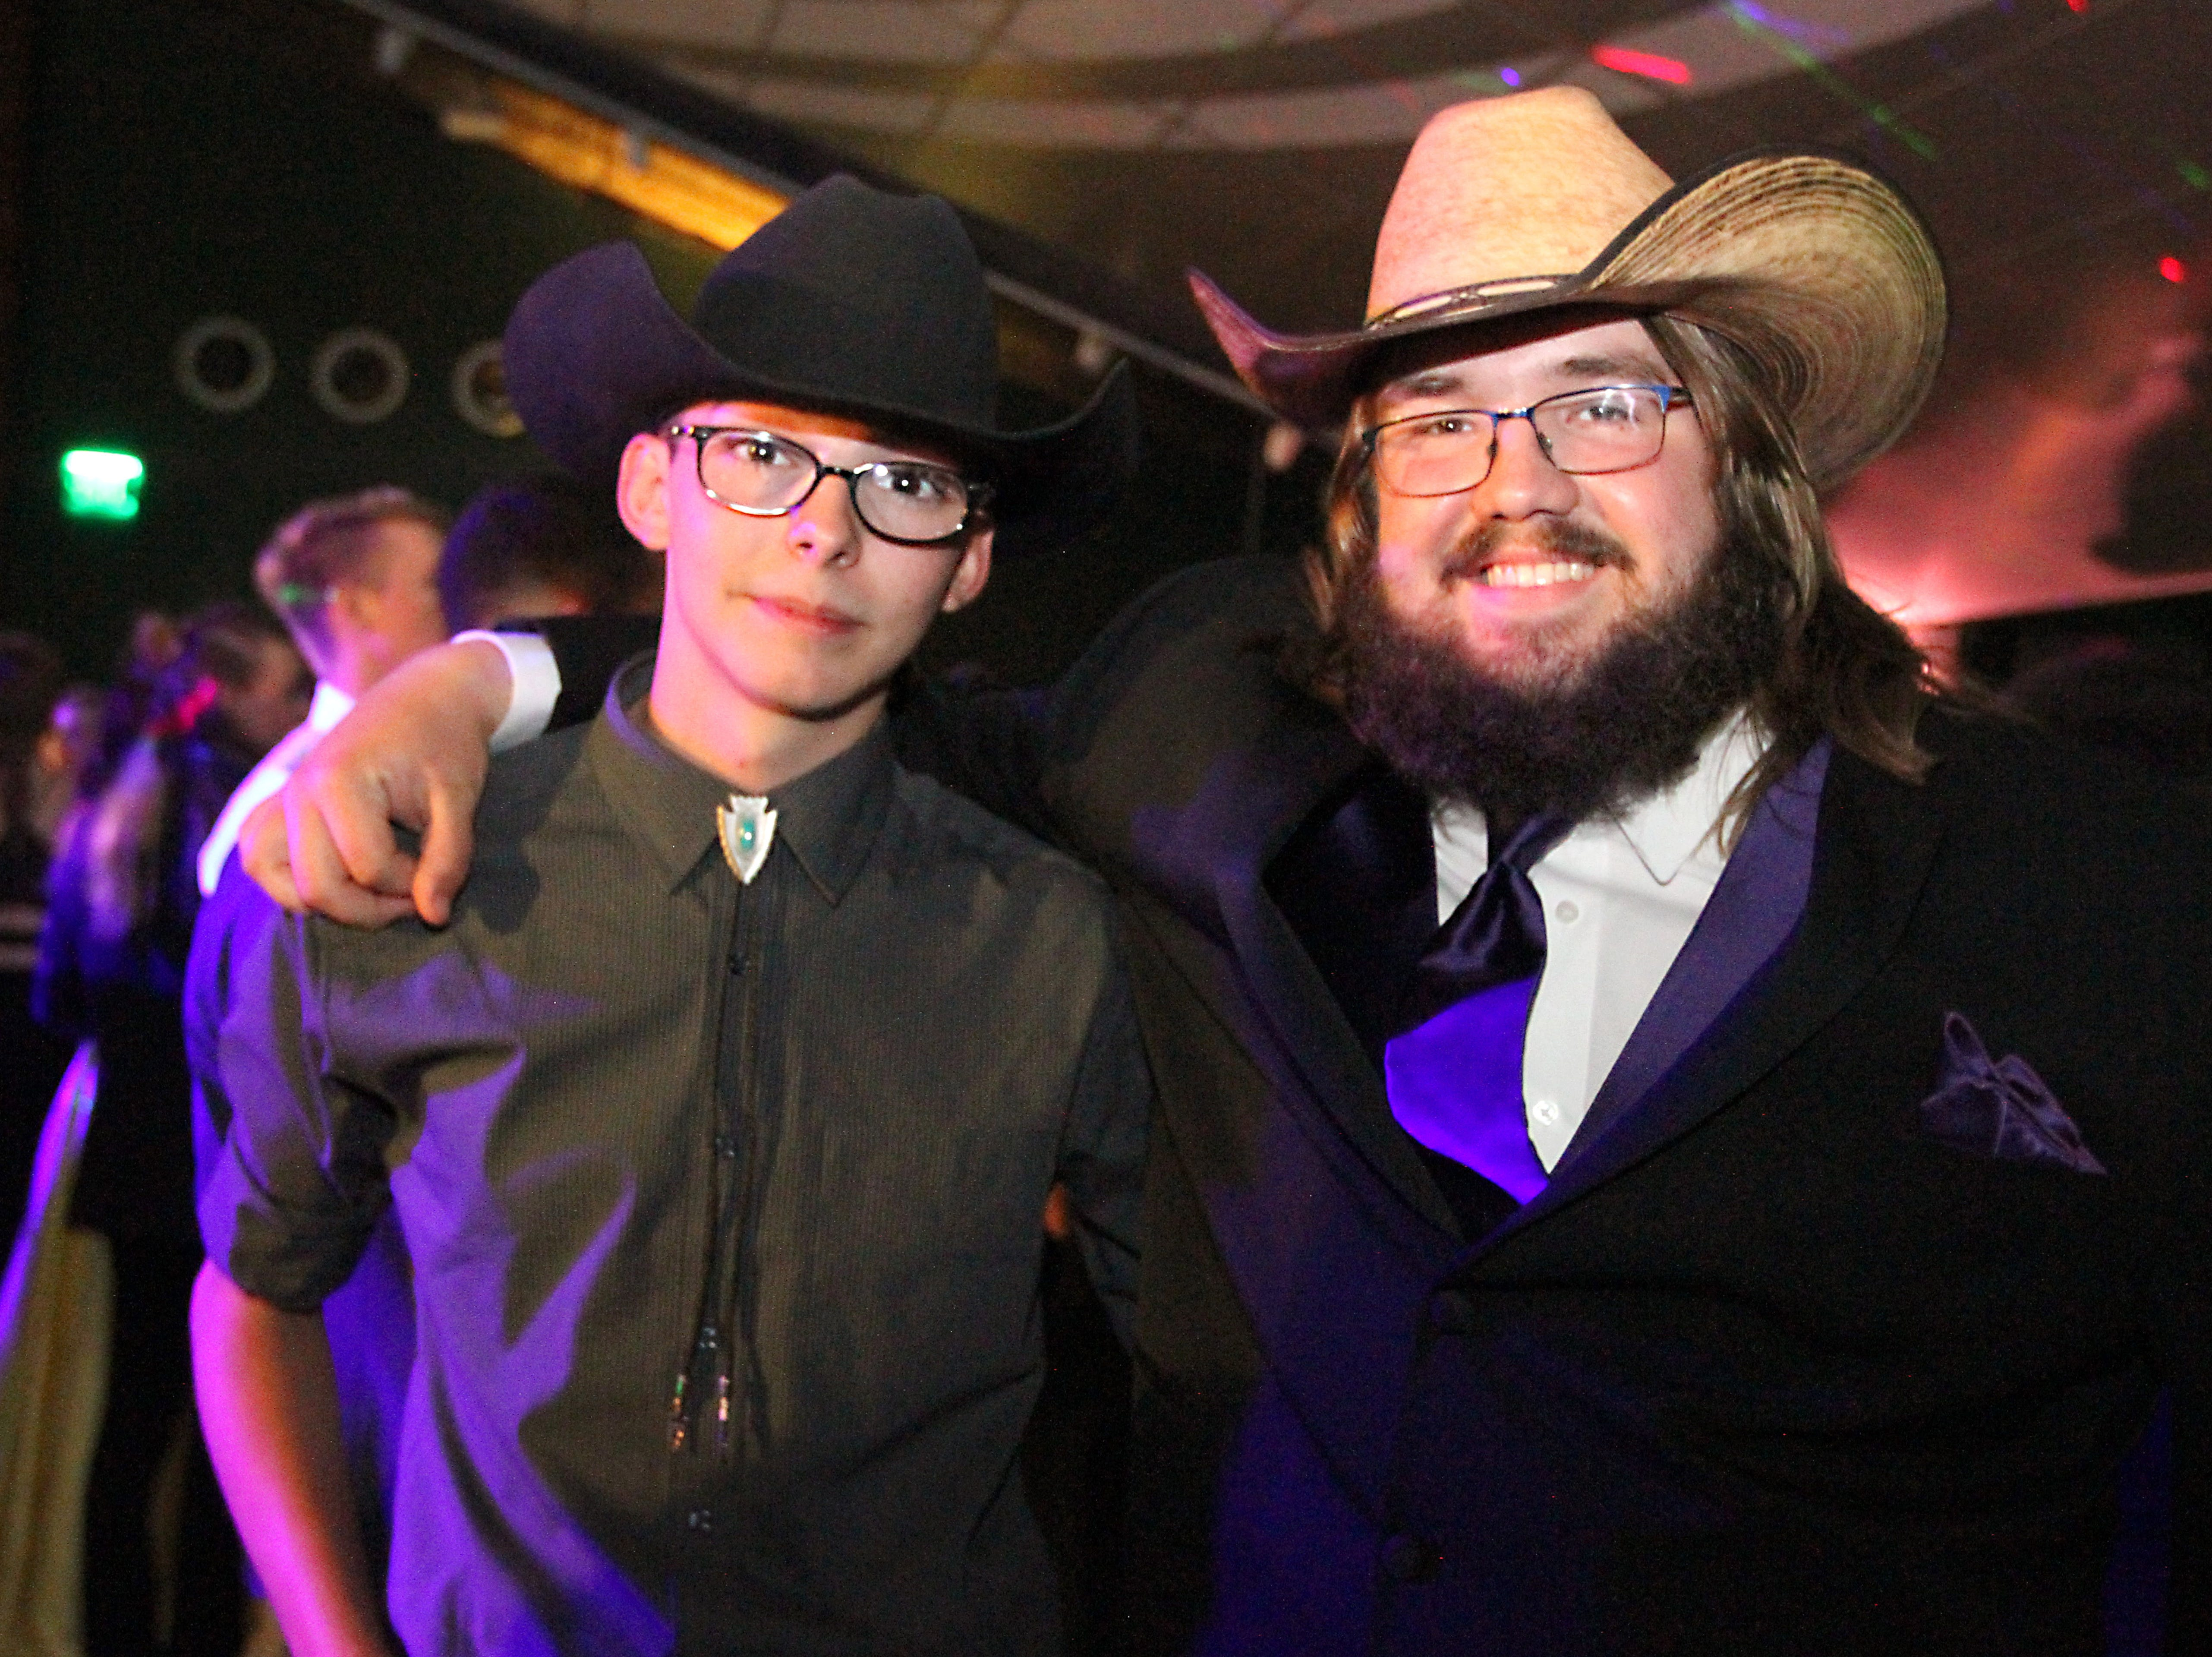 Joel Blocker / For the Coloradoan Fort Collins high School students, from left, Joseph Schippers and Tucker Leadbetter, take a moment to pose for a photo during the Fort Collins High School prom held at Canvas stadium Saturday night.